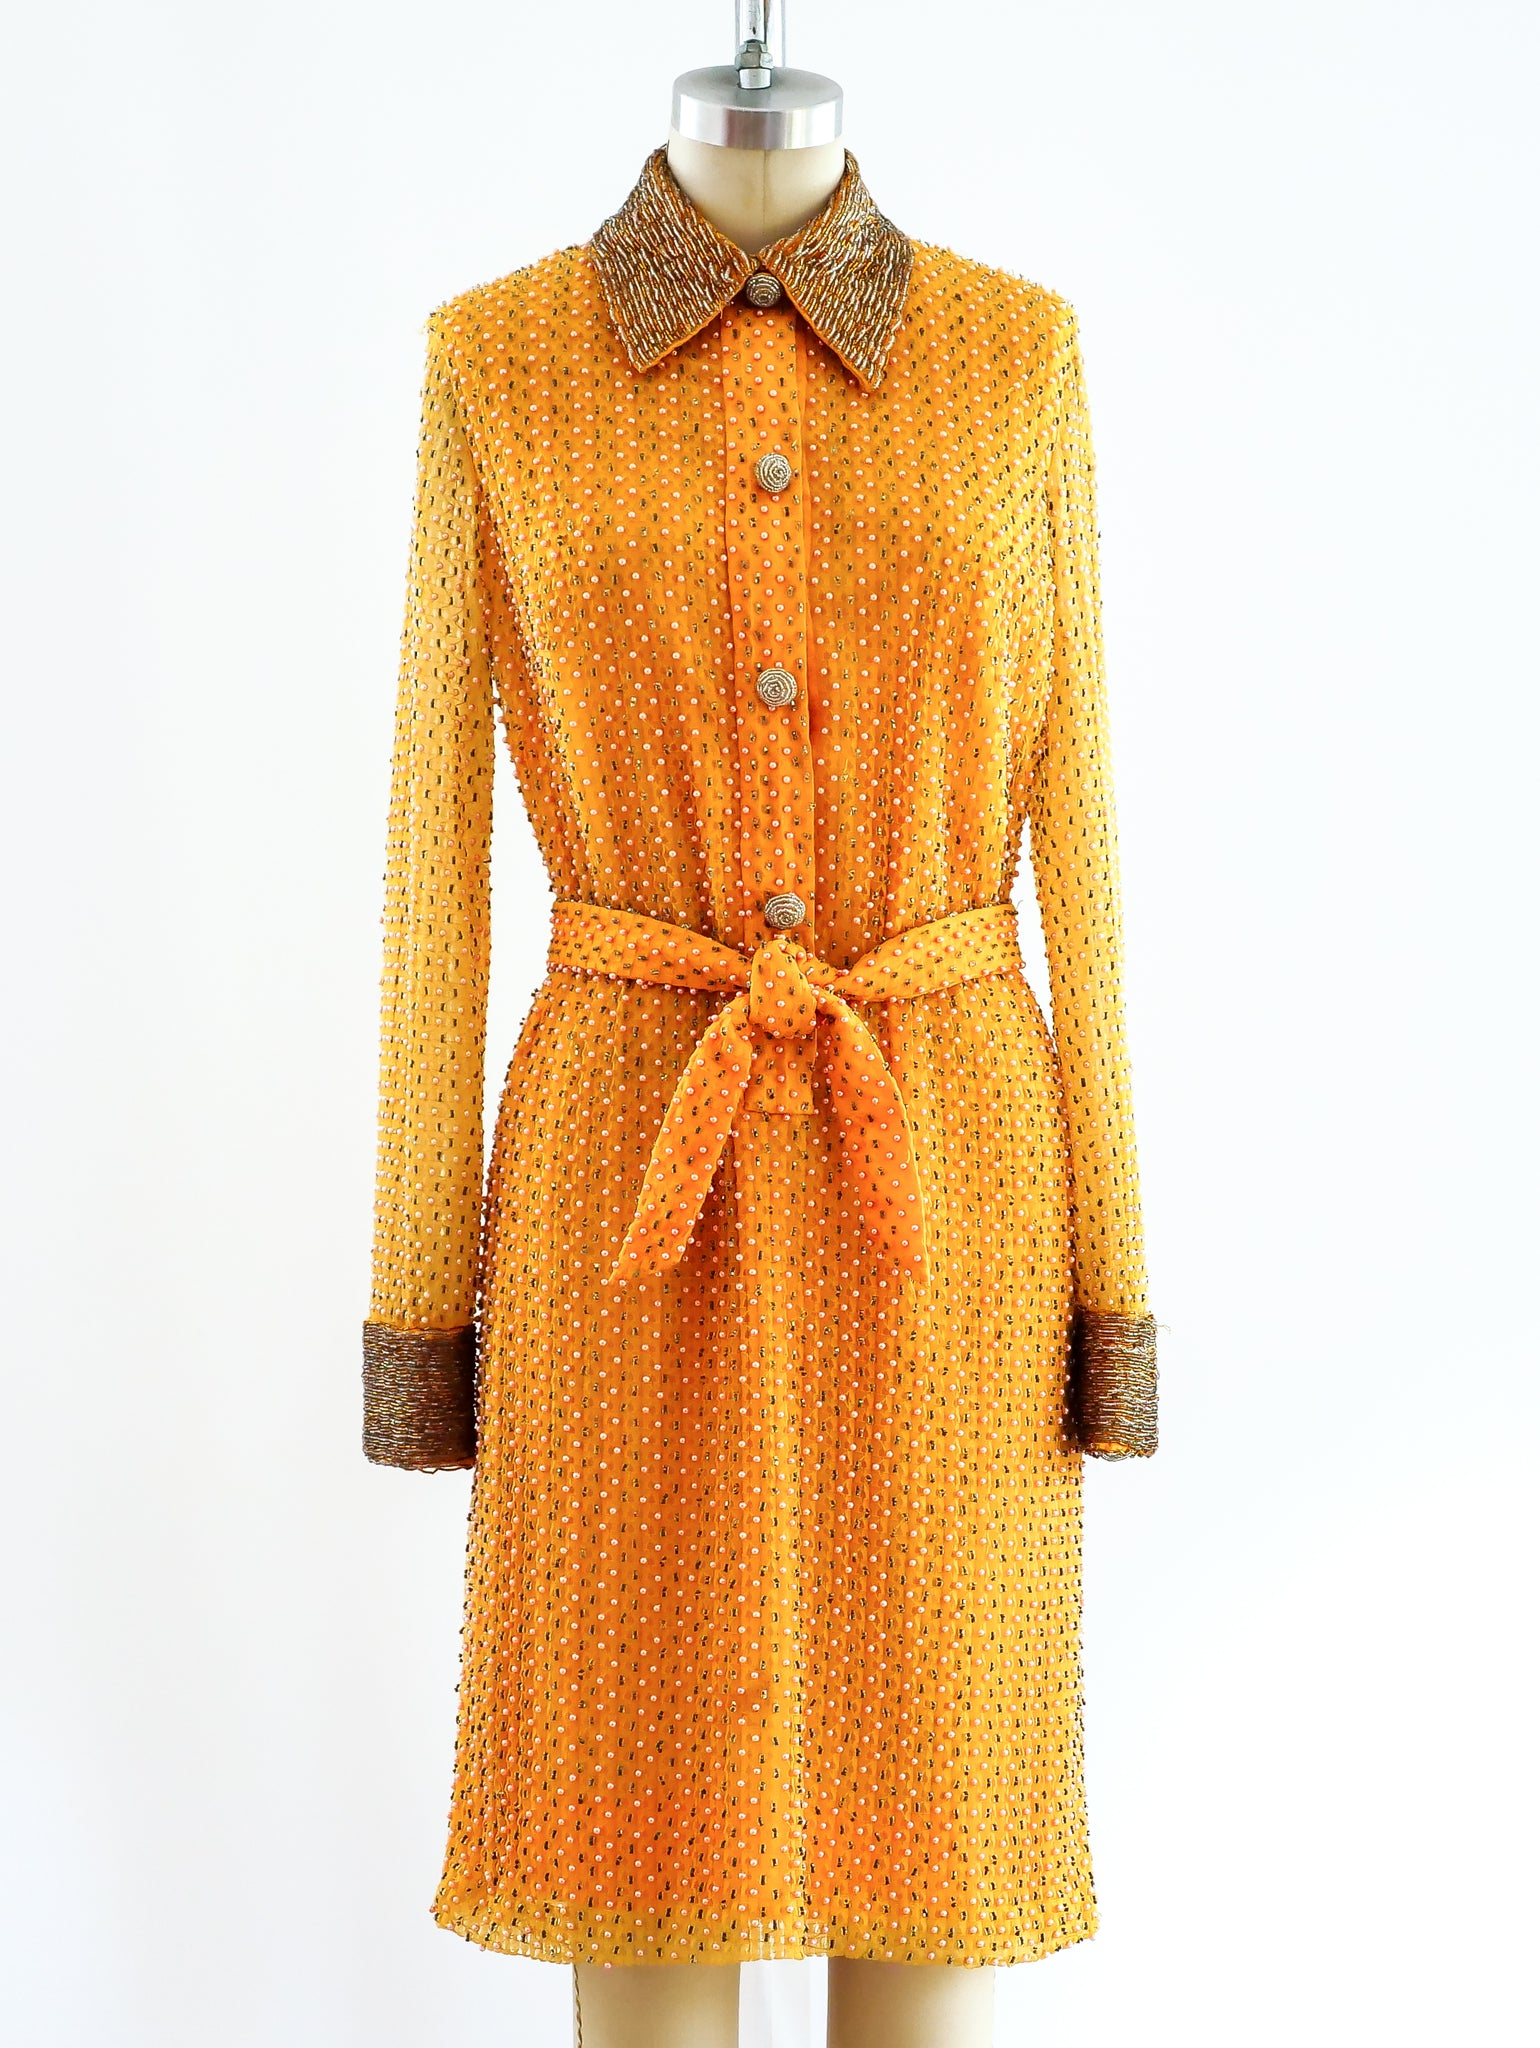 Tangerine Beaded Shirt Dress